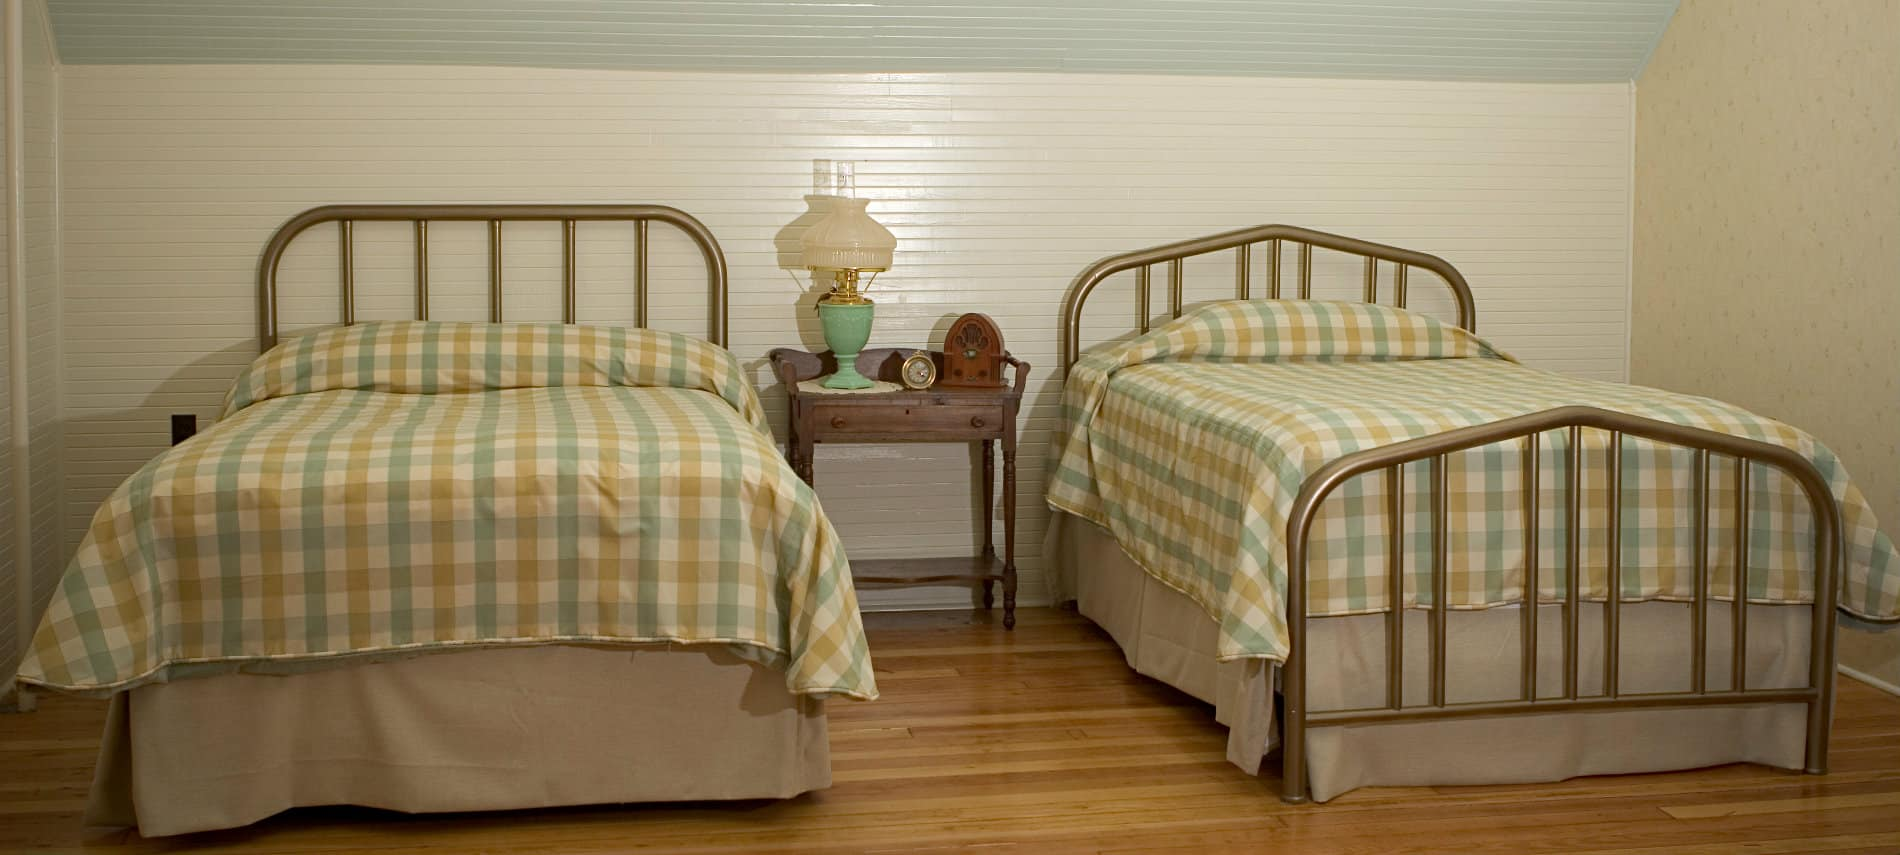 Twinn brass beds made up in white tan and cream plaid bedding in a bedroom with white paneling.